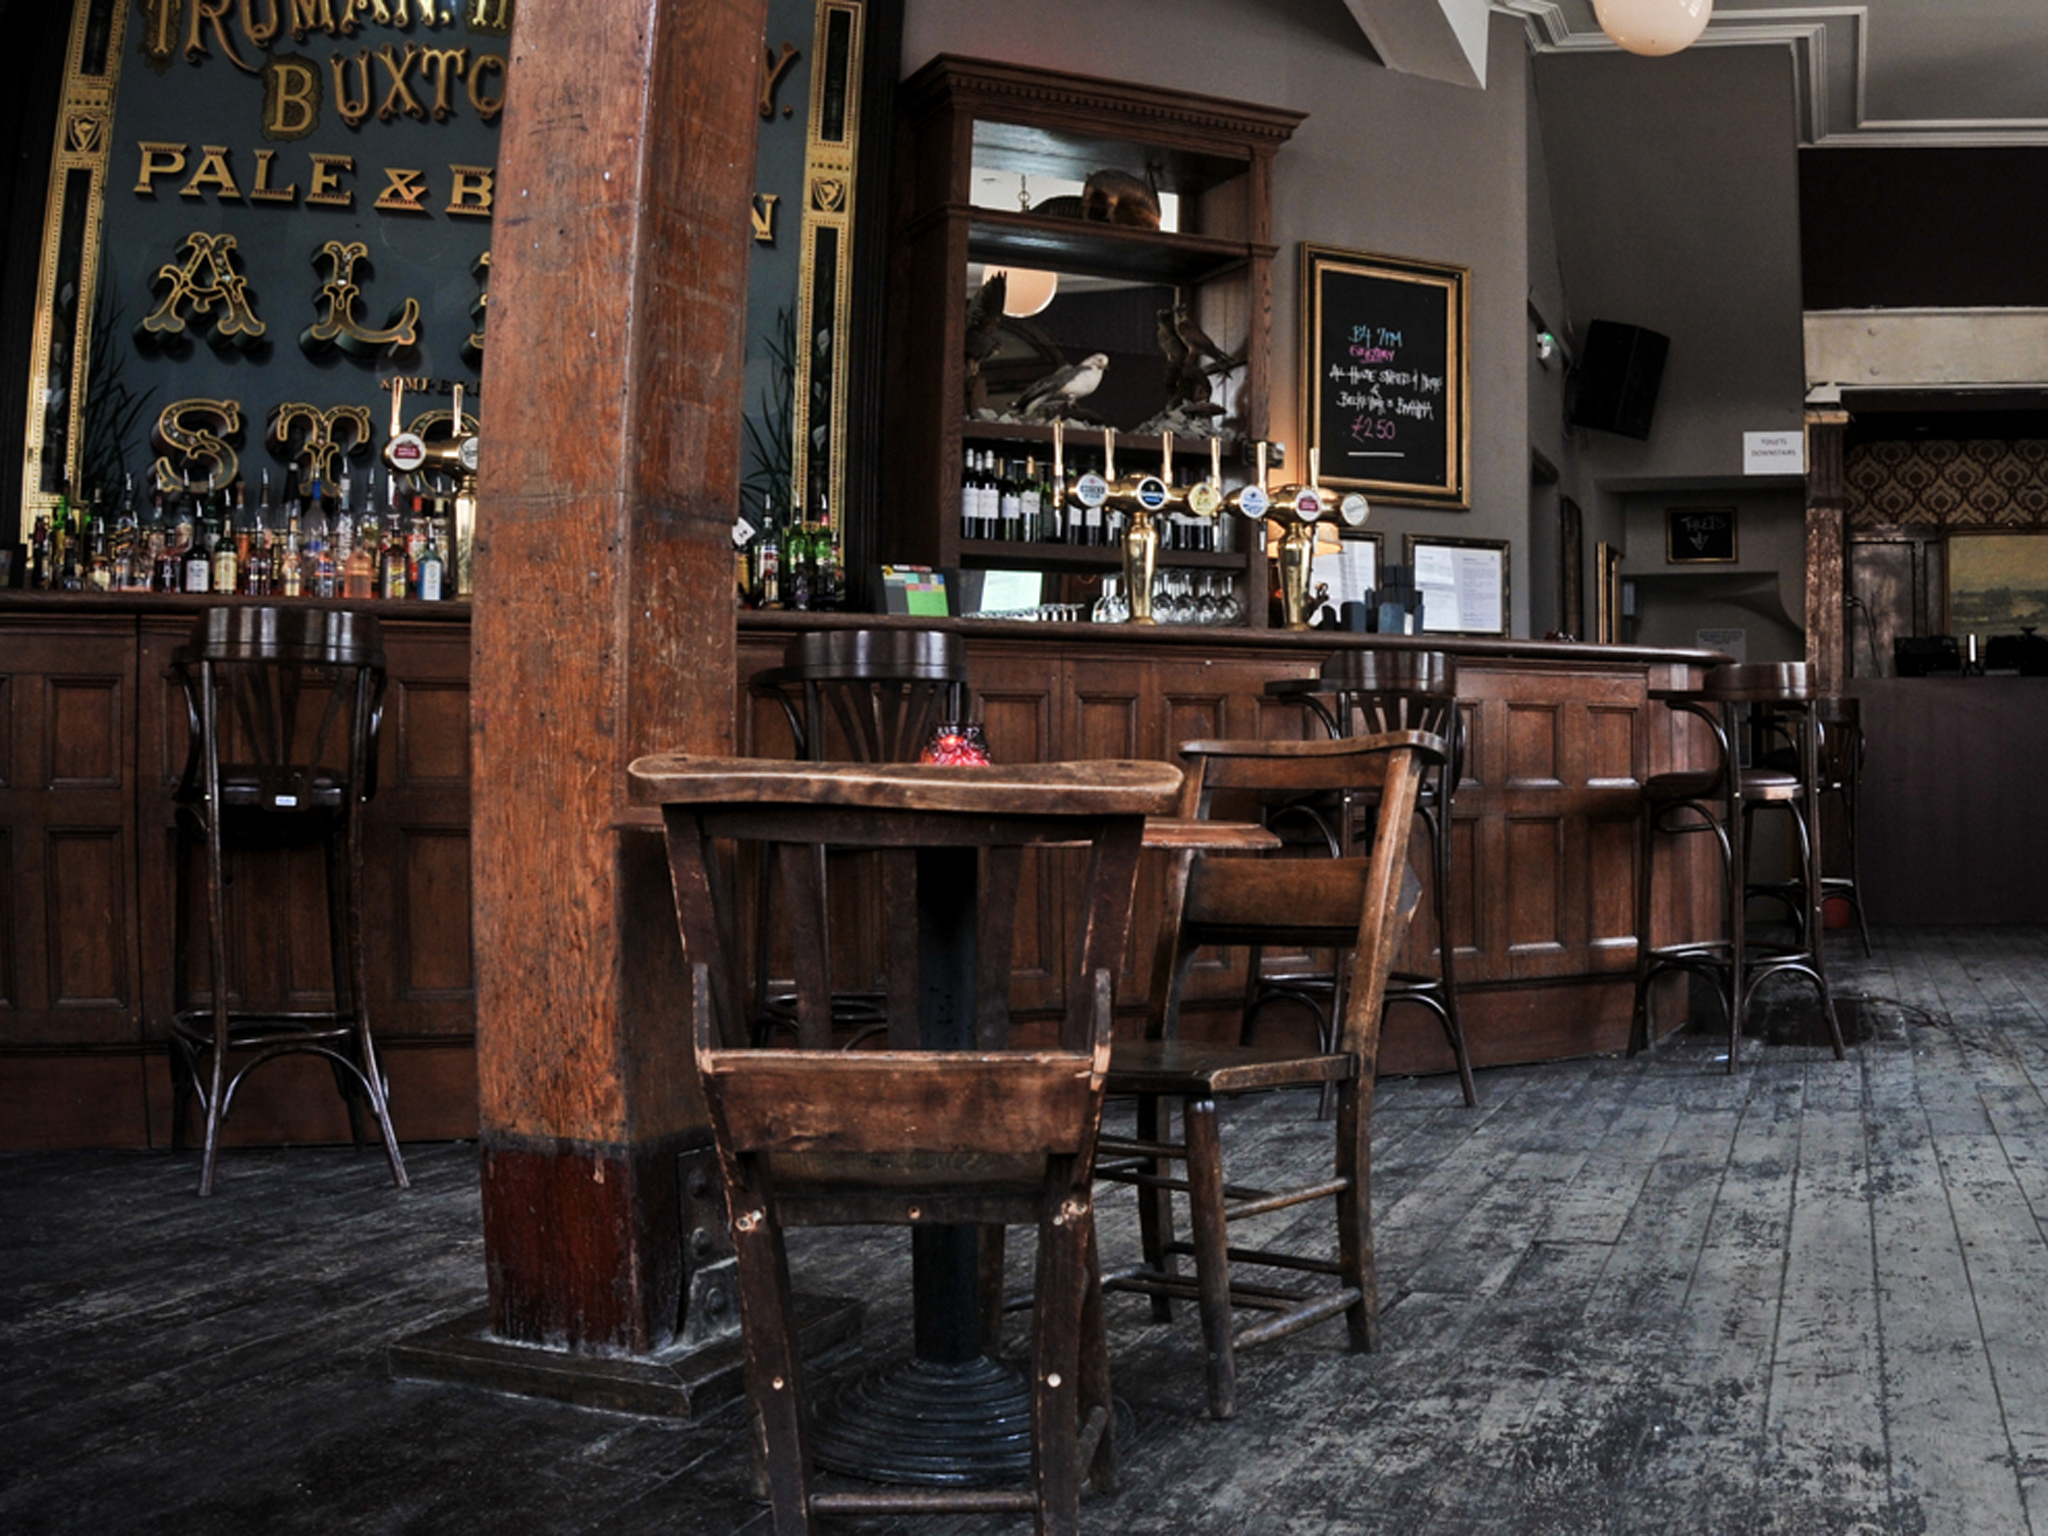 The 100 best bars and pubs in London - Old Blue Last, Shoreditch